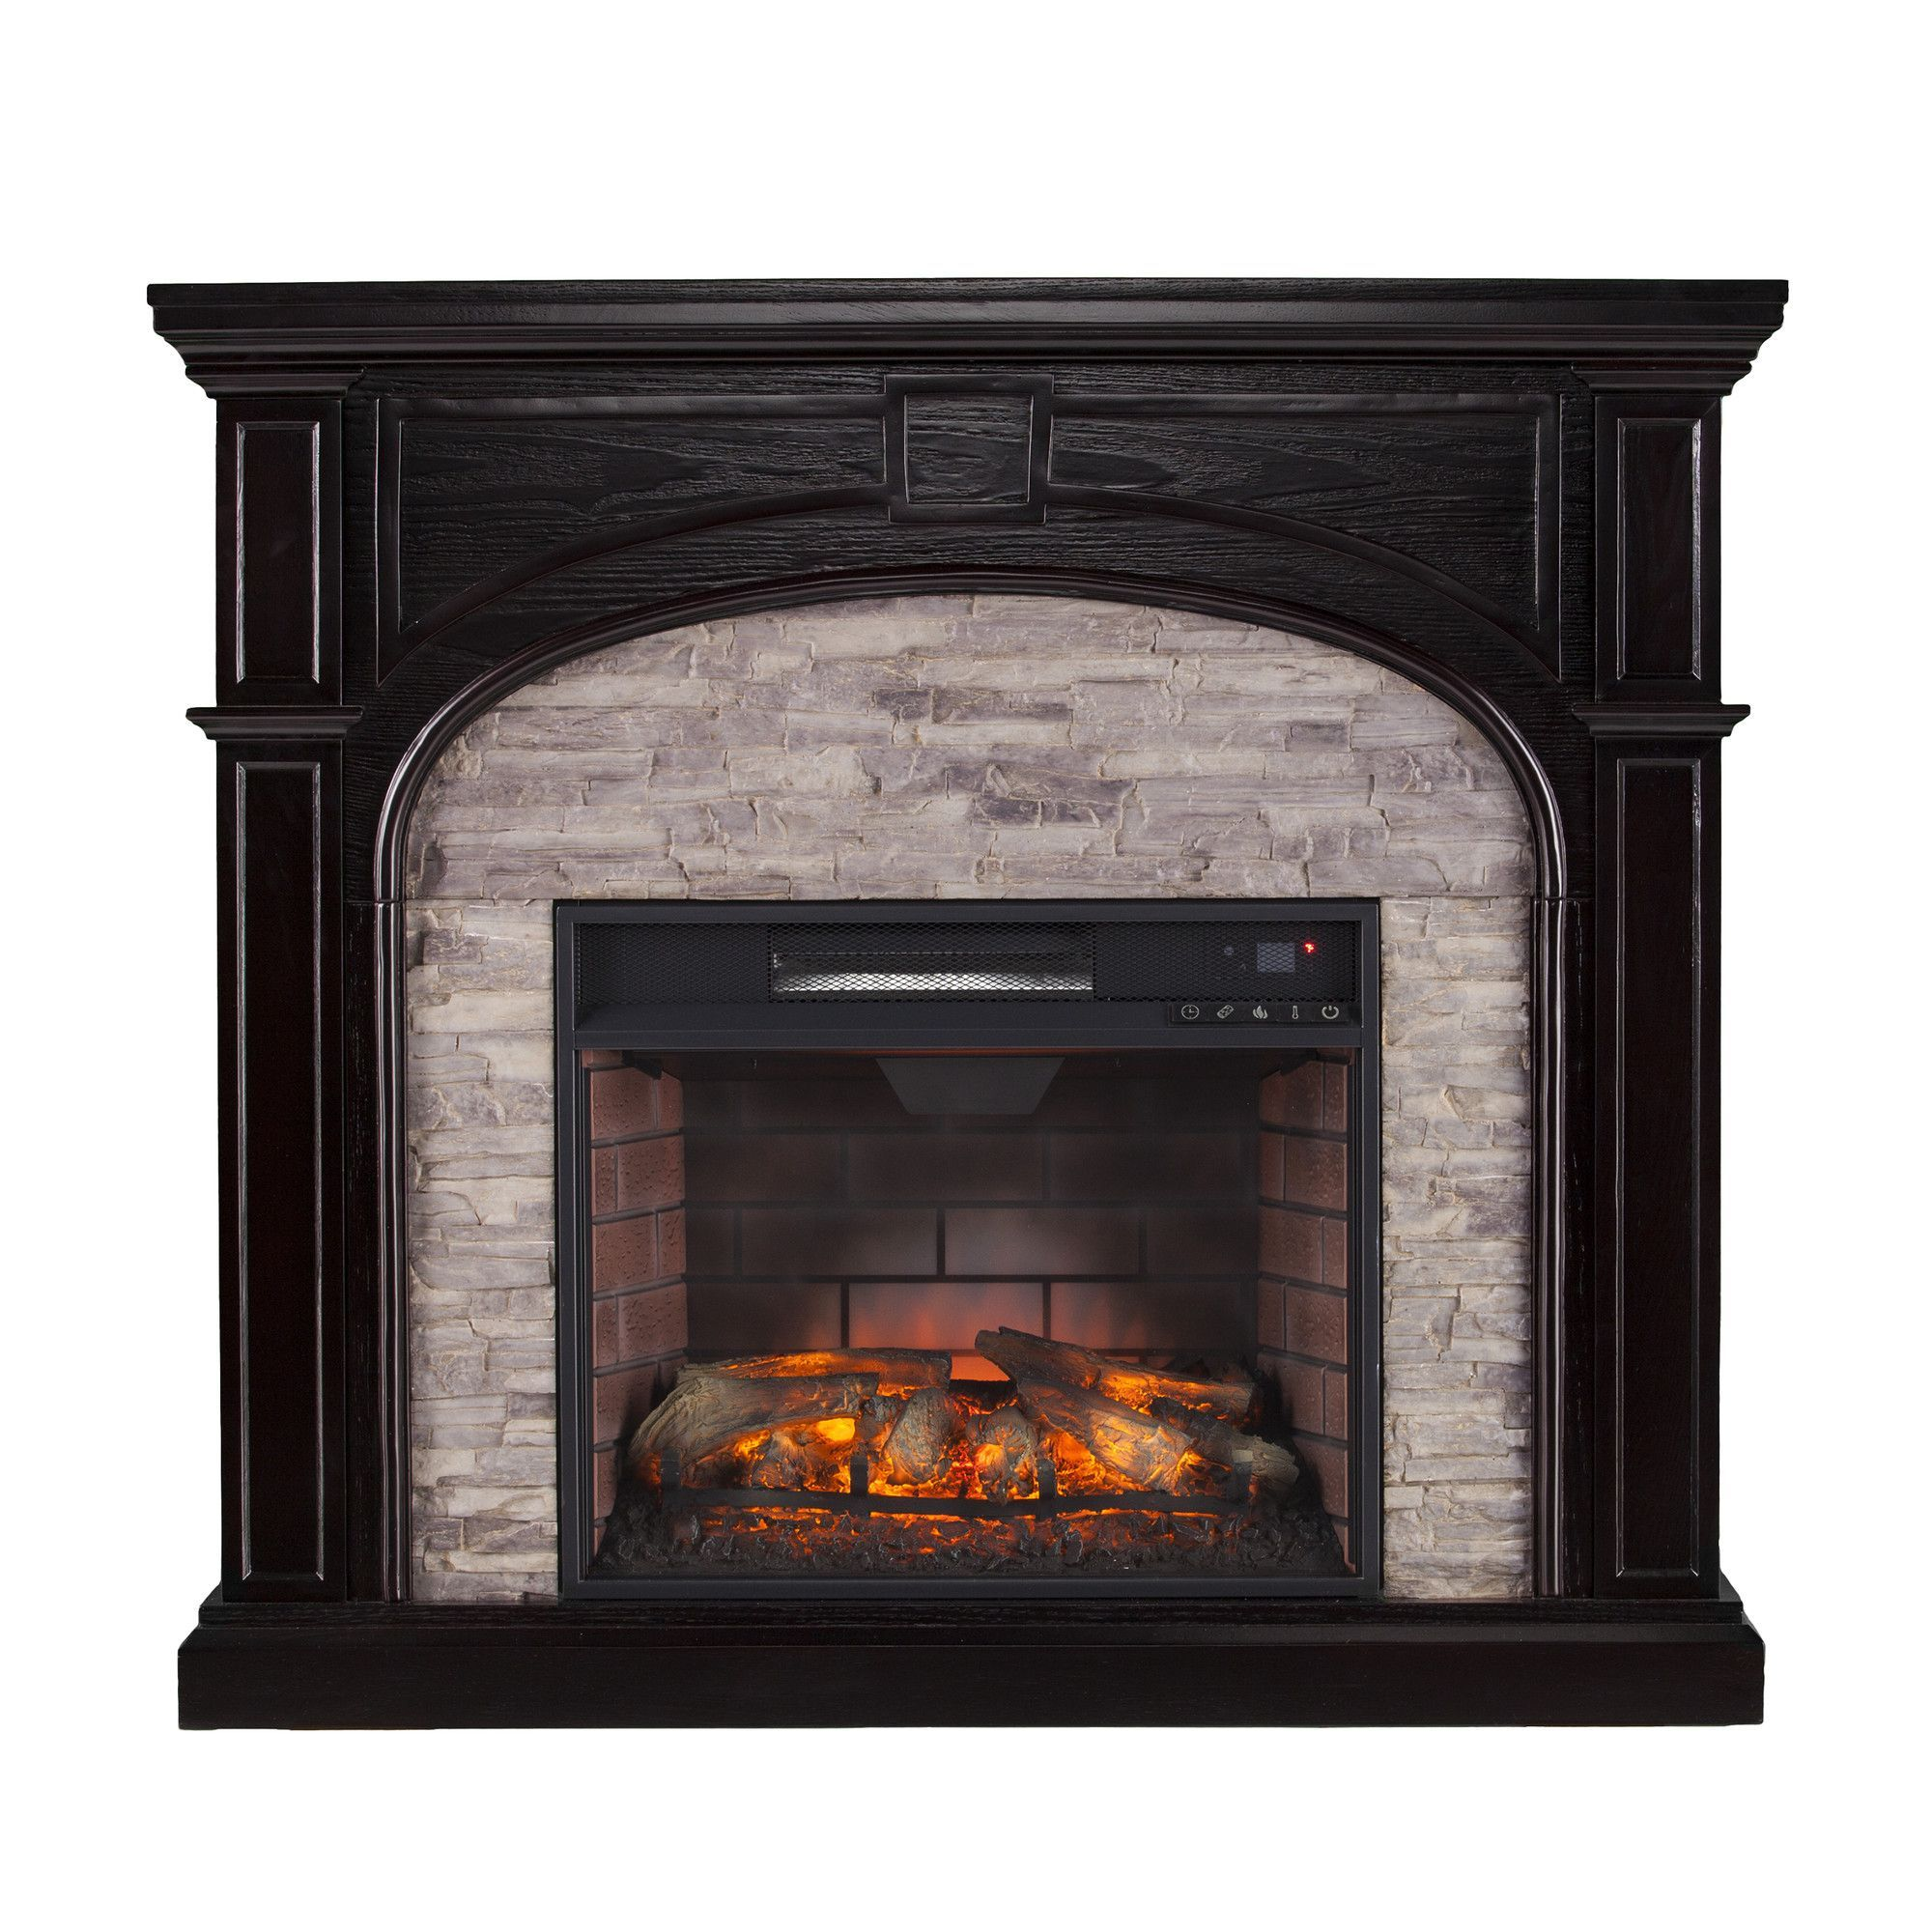 kingsman plus ventless inserts during mantle long using fireplace the keeps from winter table and room insert gas with faux delightful warm armoire living coffee stone